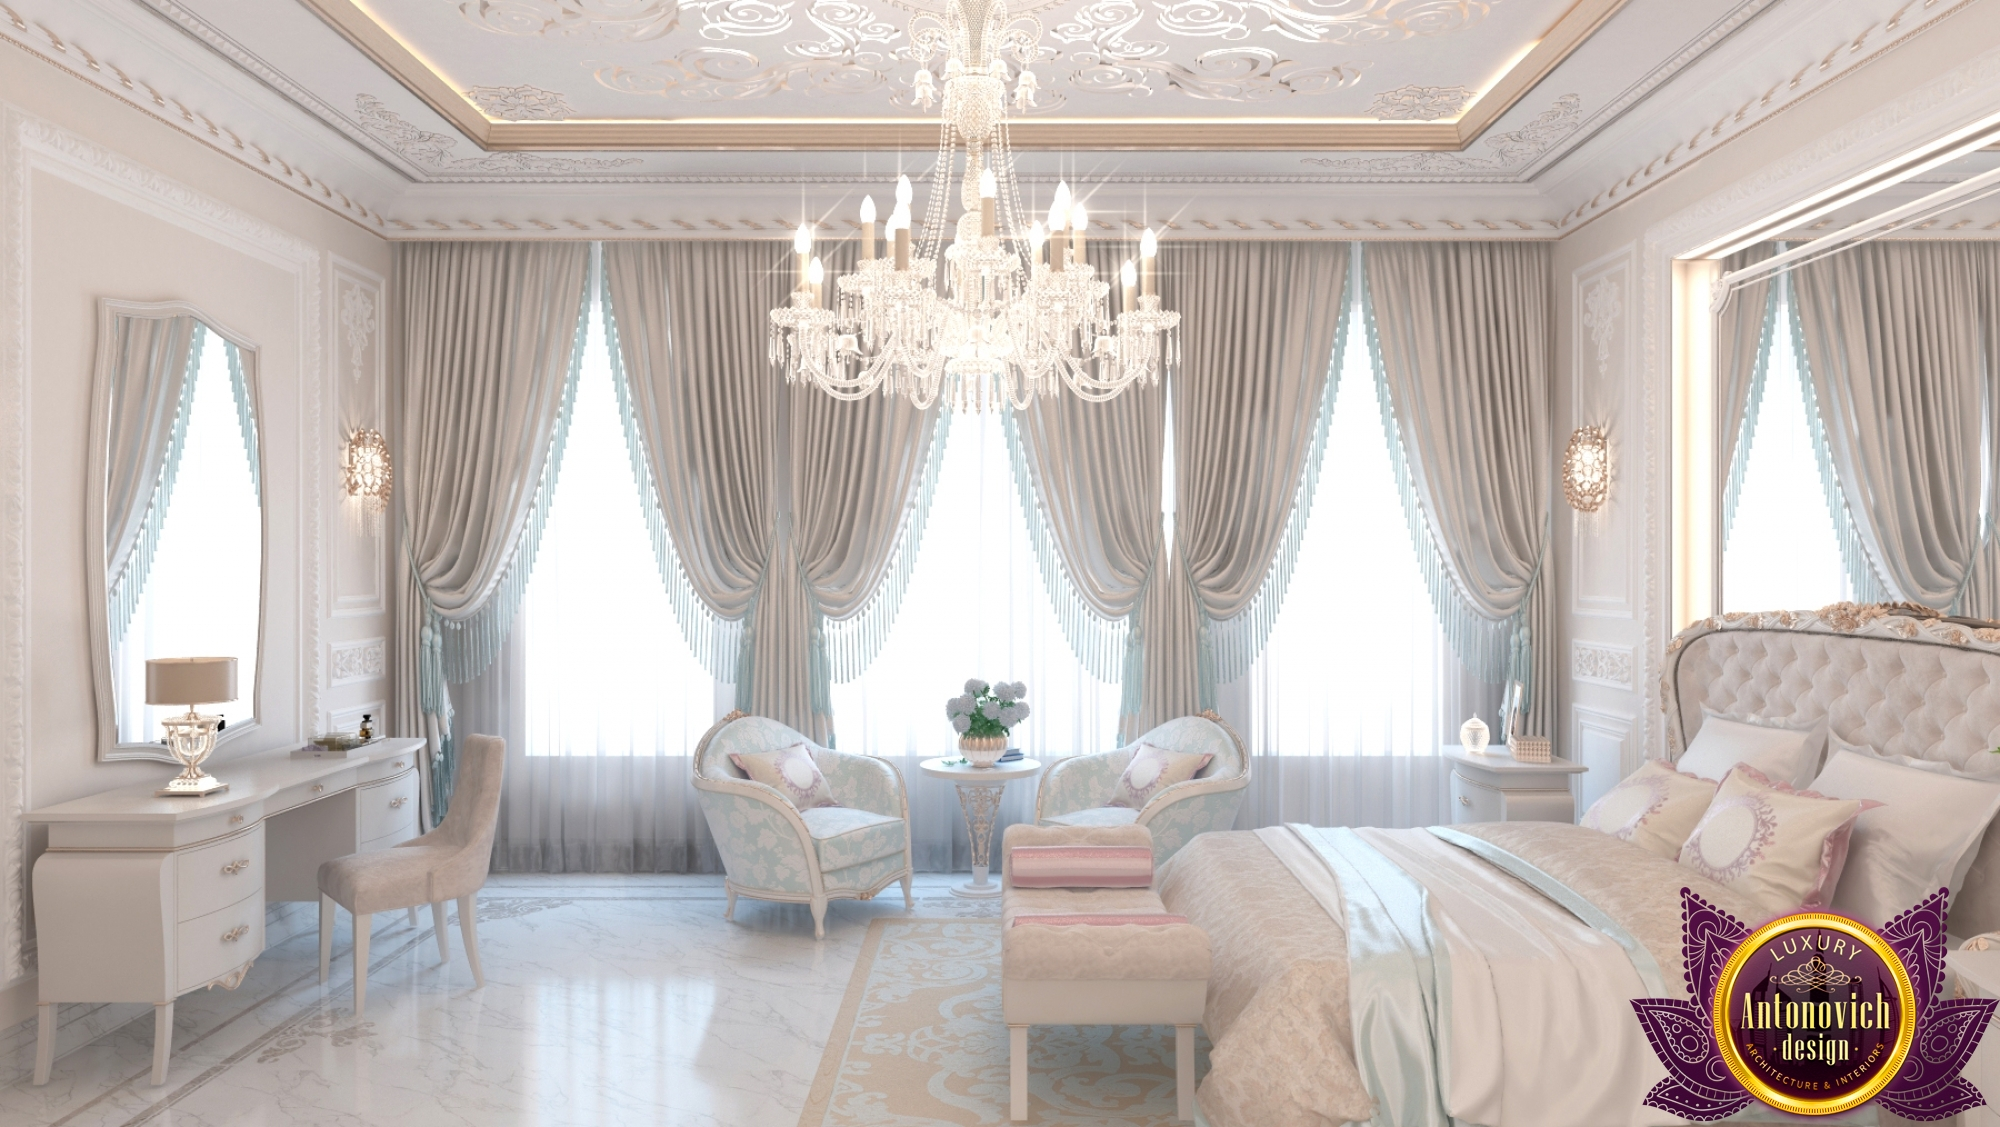 Free photo: Royal Bedroom - pillow, living, light - Non-Commercial ...